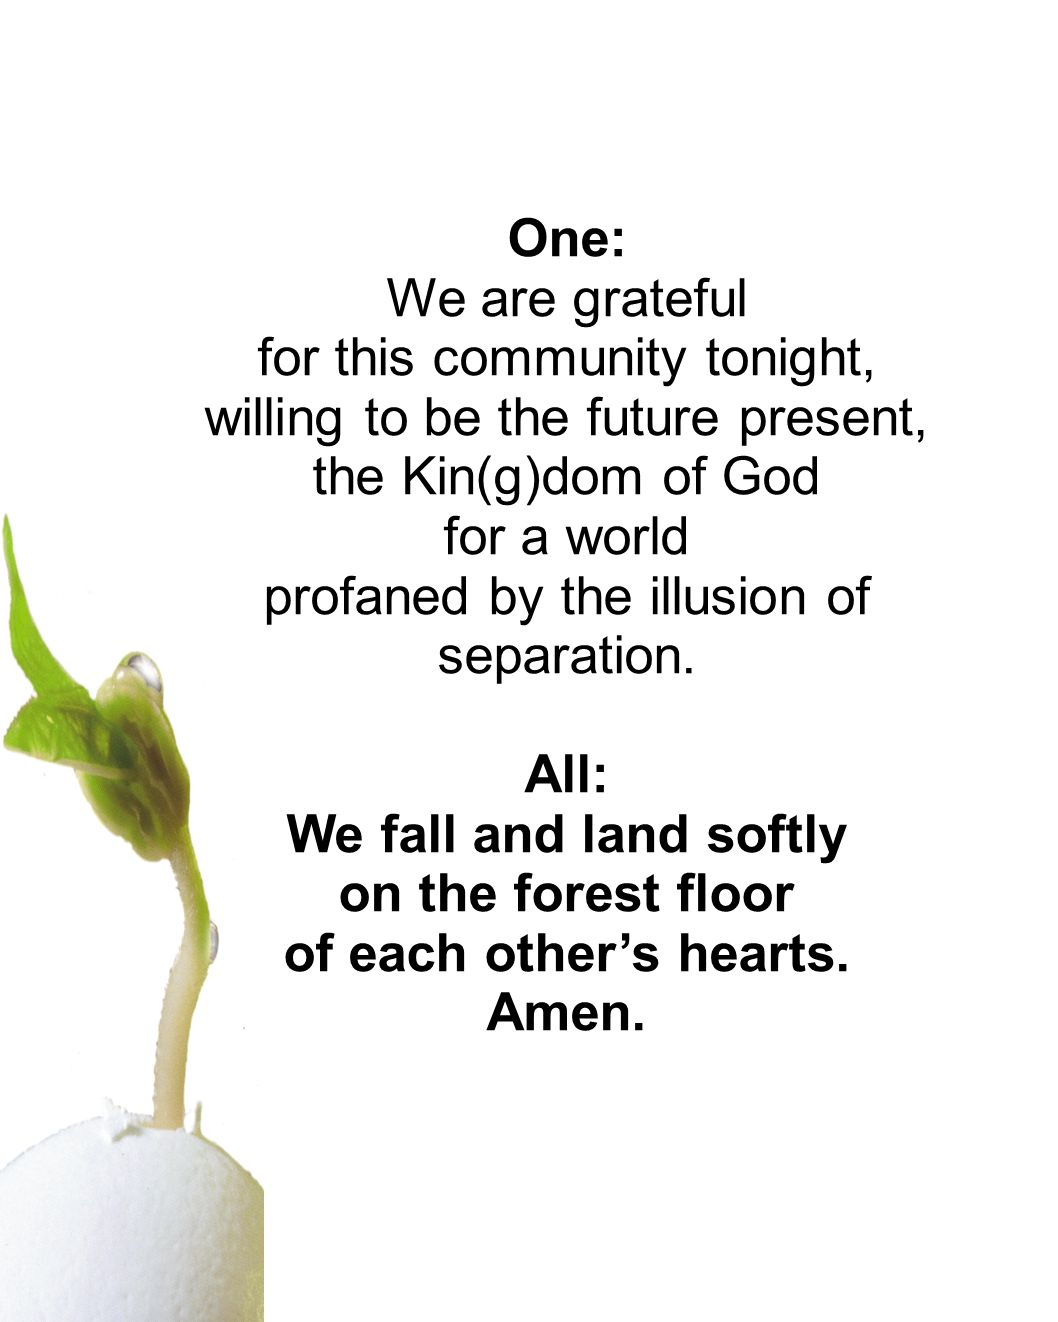 One: We are grateful for this community tonight, willing to be the future present, the Kin(g)dom of God for a world profaned by the illusion of separation.